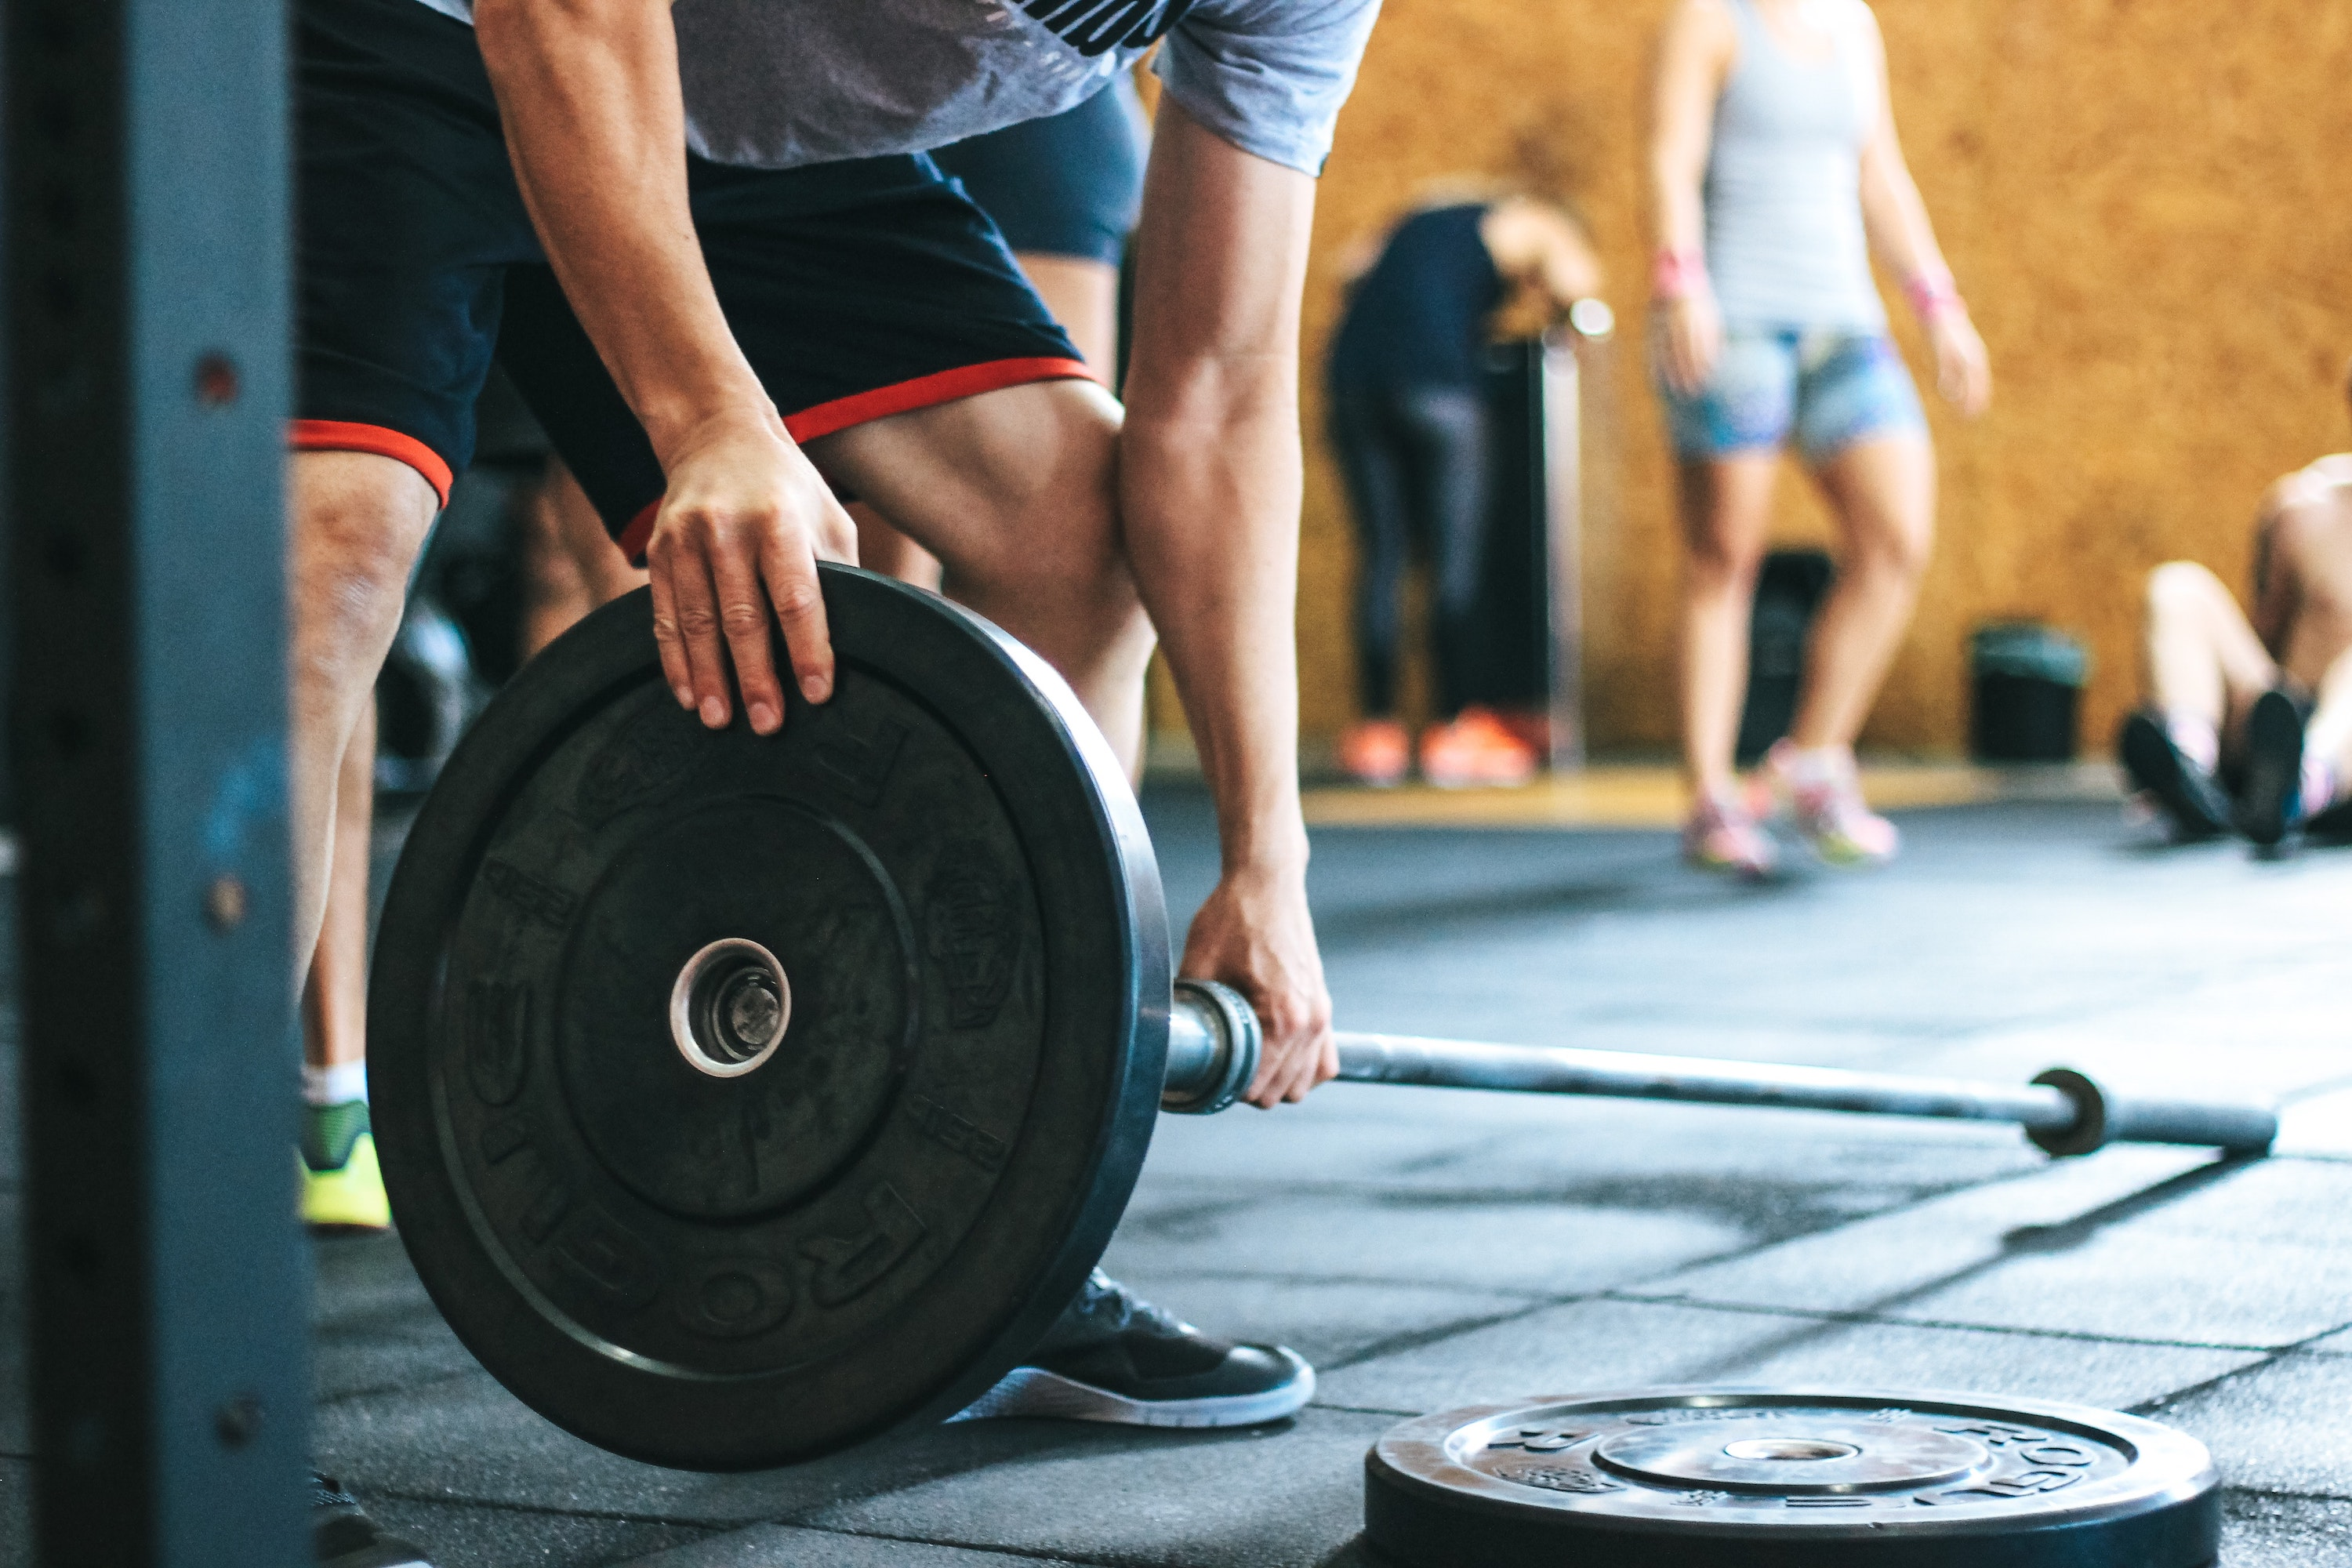 Weight Training Before Swimming? What's The Right Order